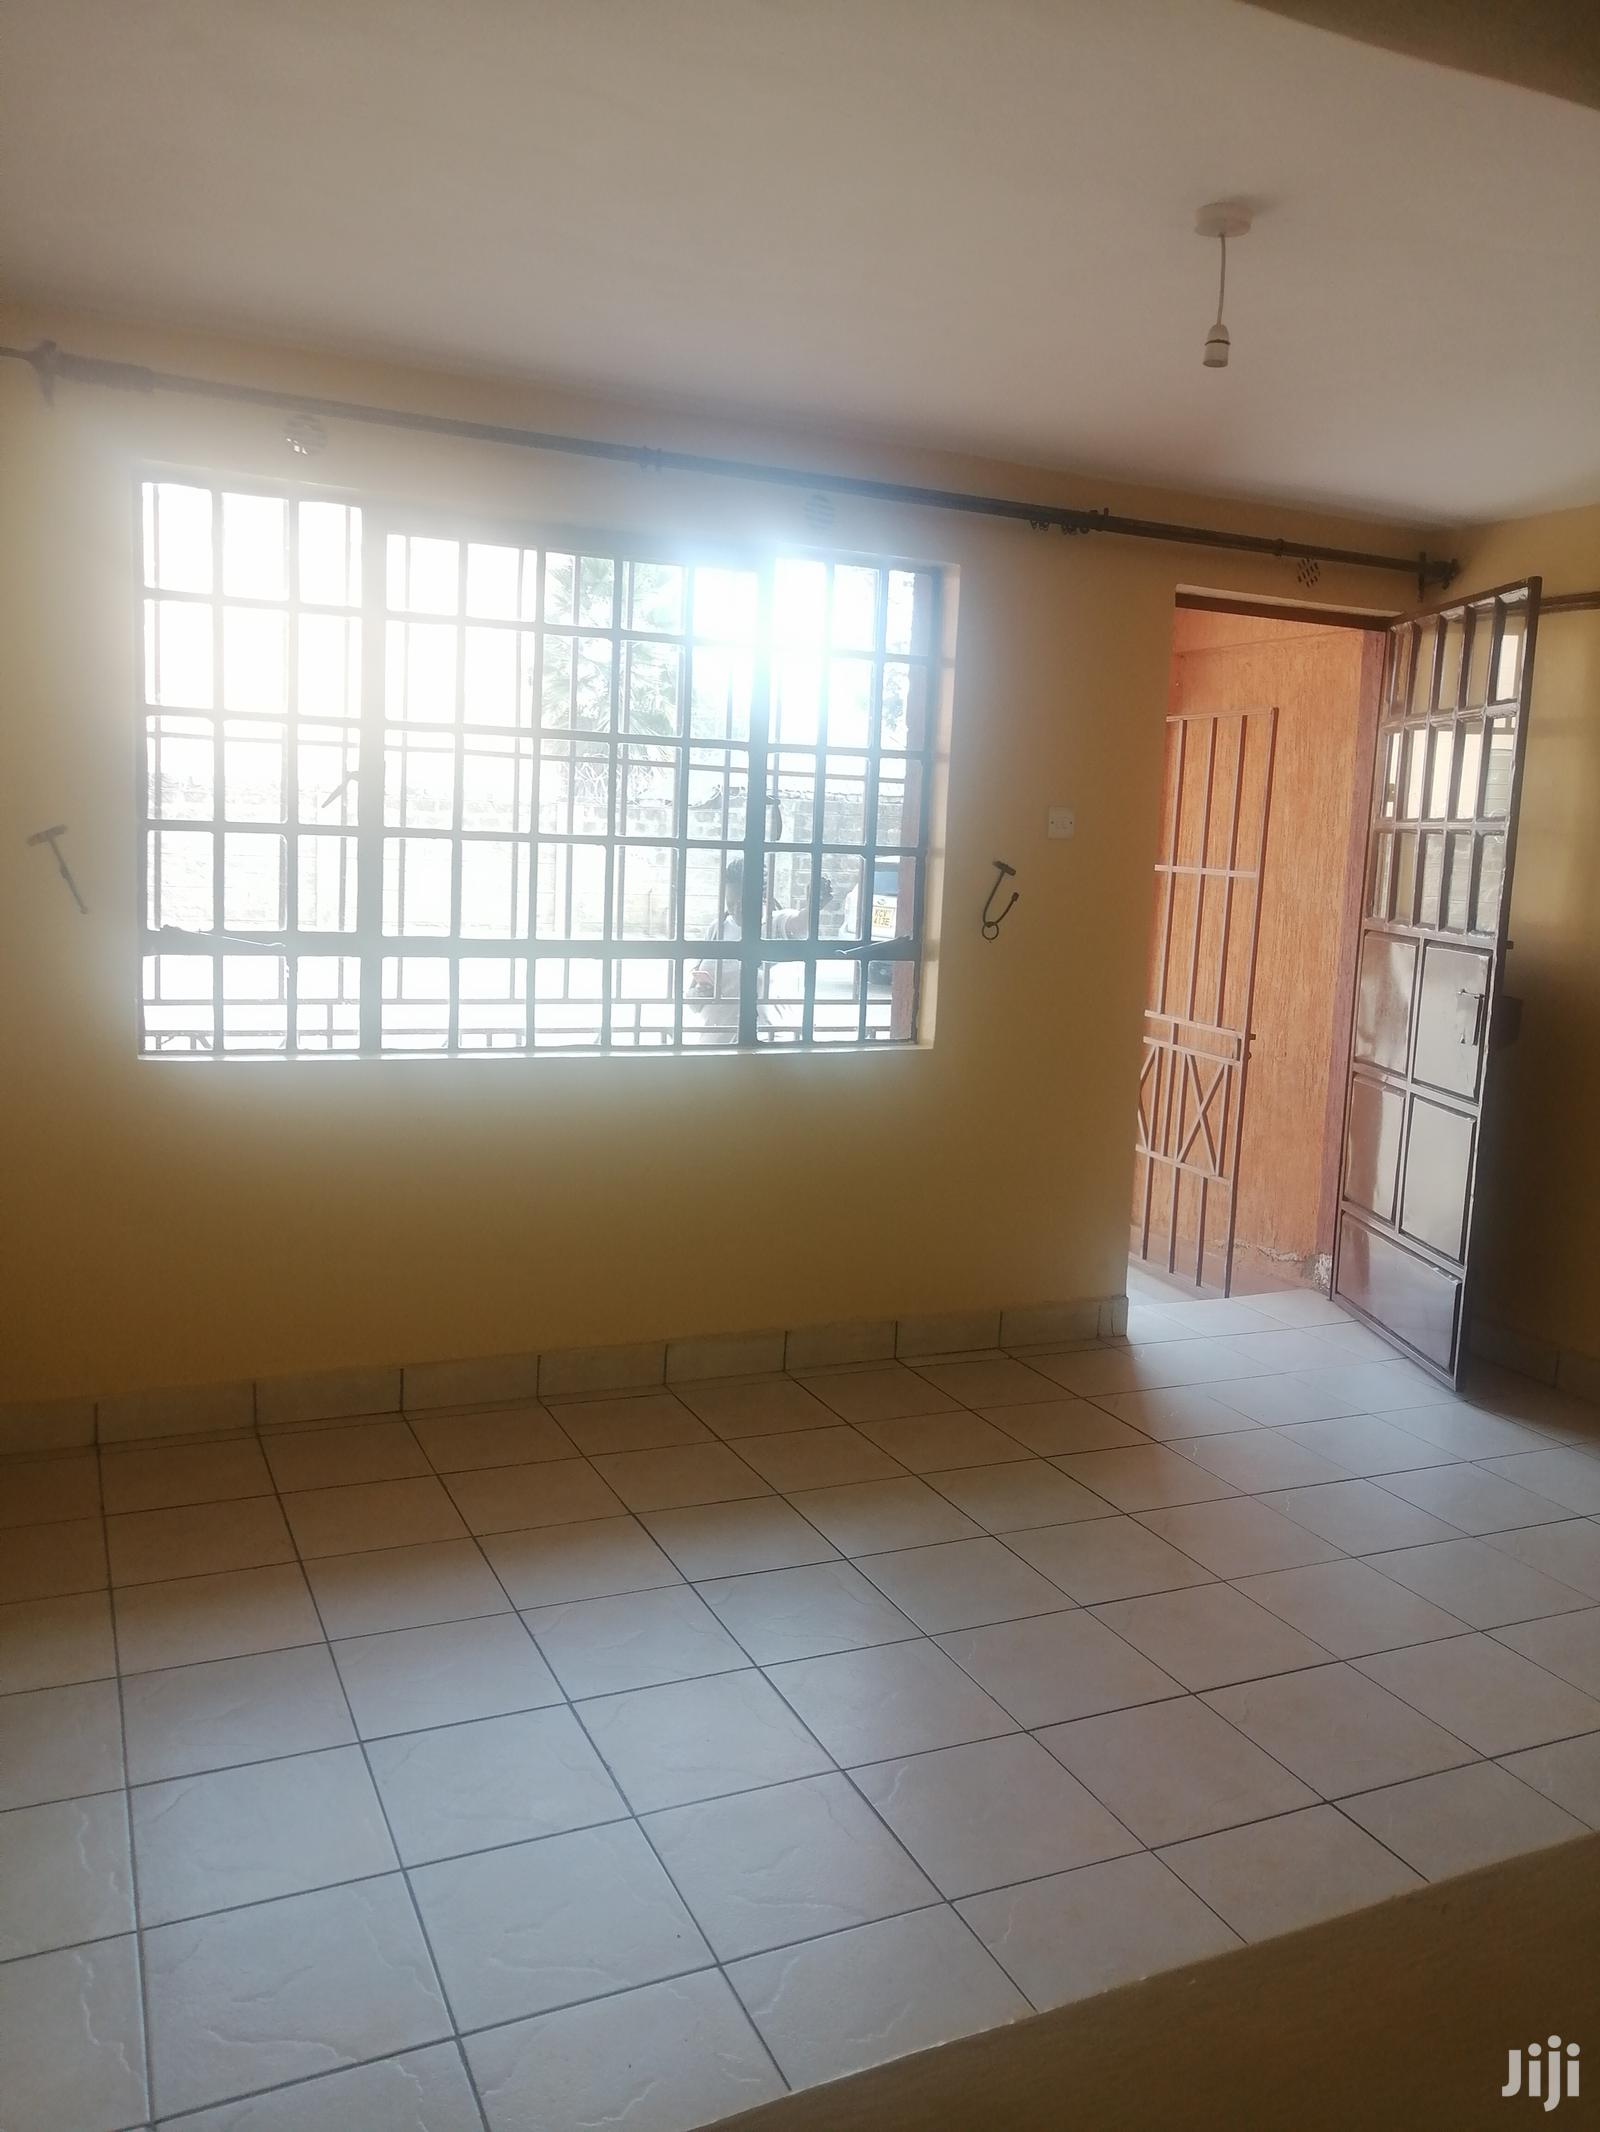 2 Bedroom Apartment For Rent | Houses & Apartments For Rent for sale in Ongata Rongai, Kajiado, Kenya